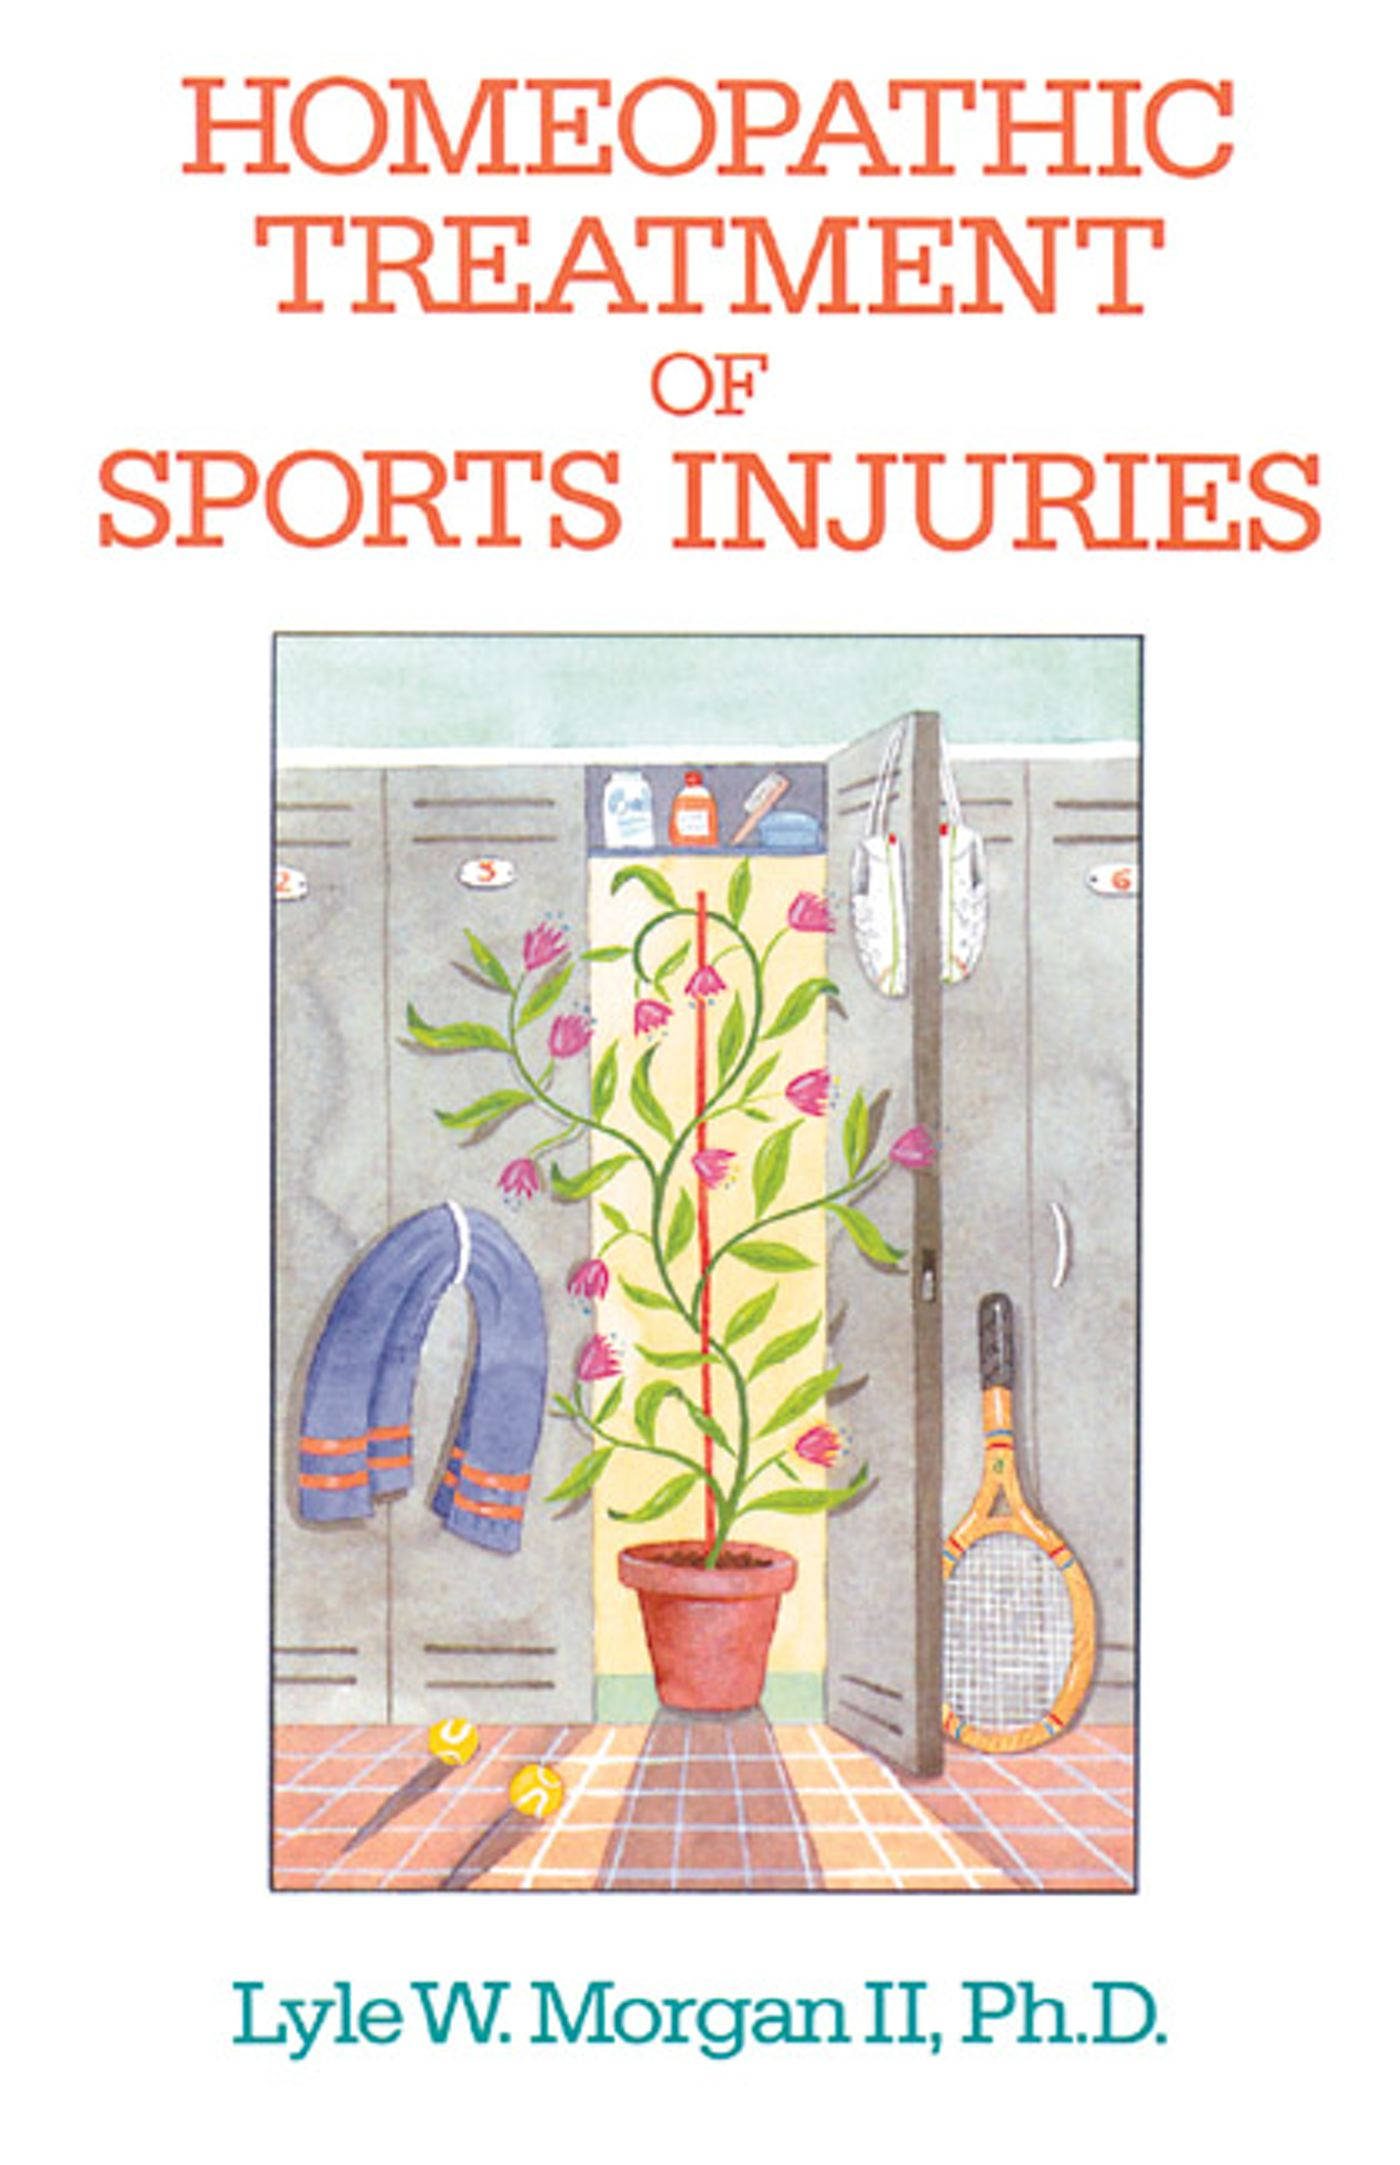 Homeopathic treatment of sports injuries 9780892812271 hr